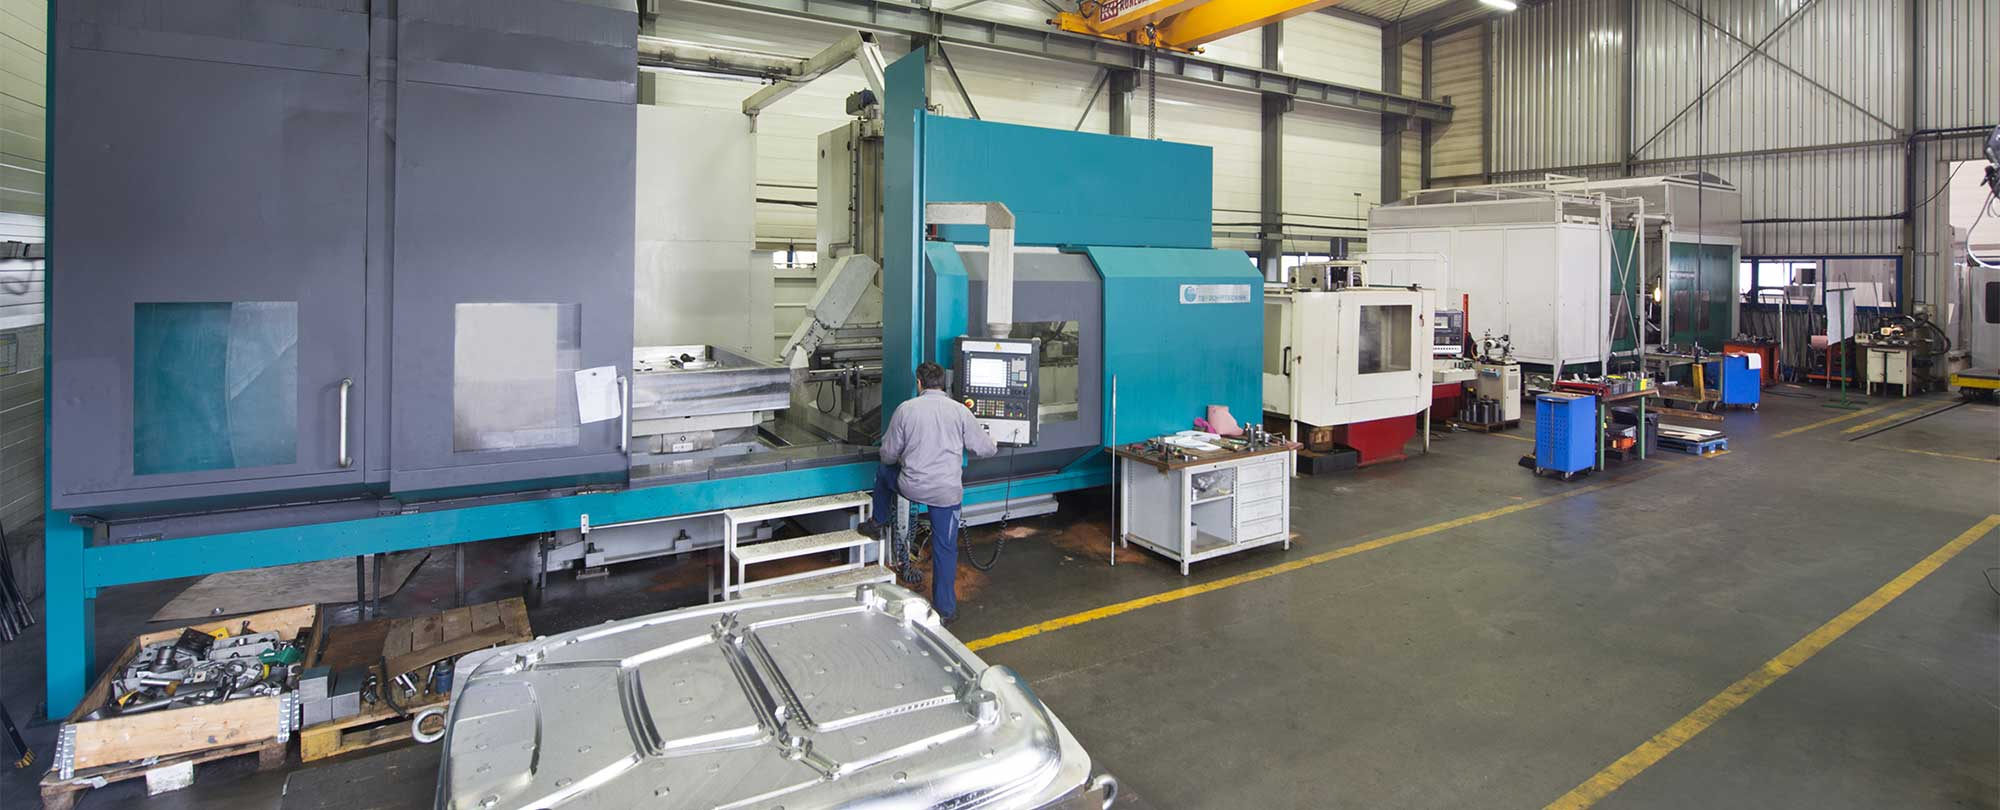 DMM - A large machine park for custom machining of your metal molds